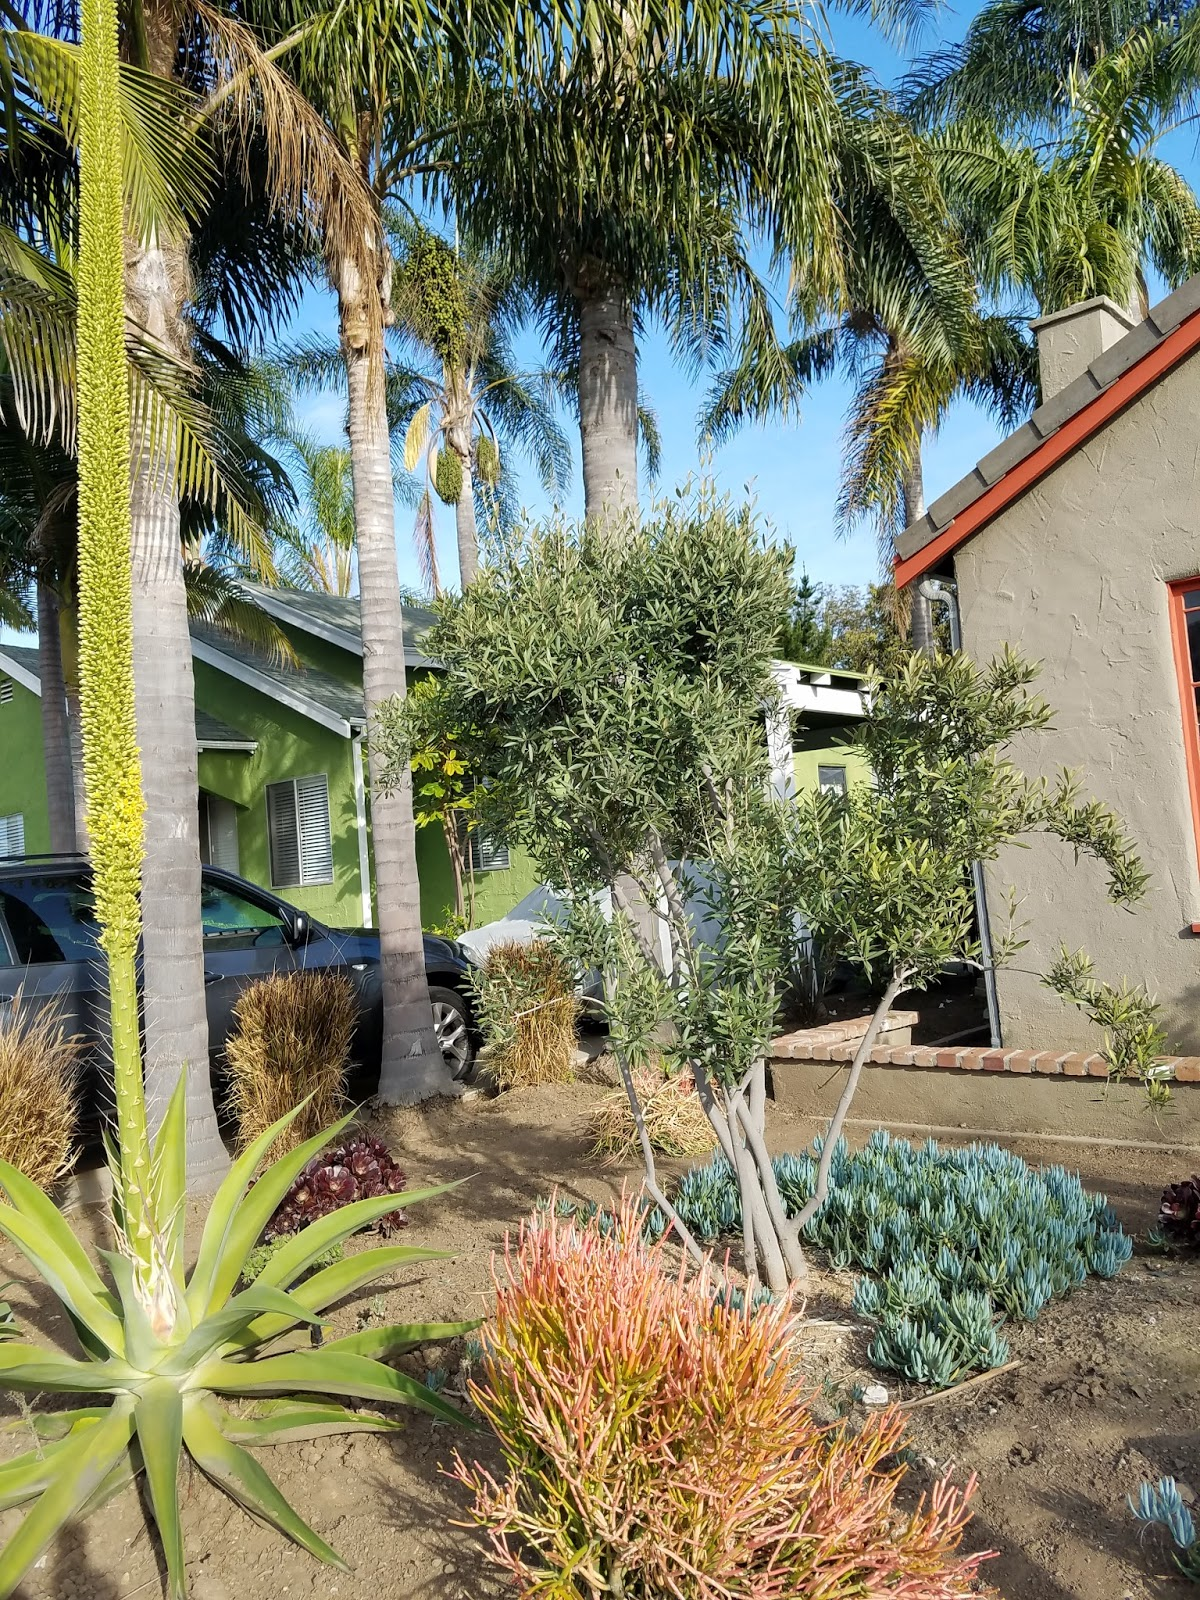 Several Years Ago We Decided To Get Rid Of Our Lawn And Put In Sustainable Plants Purchased Moreno Valley At Adam Hall S Nursery